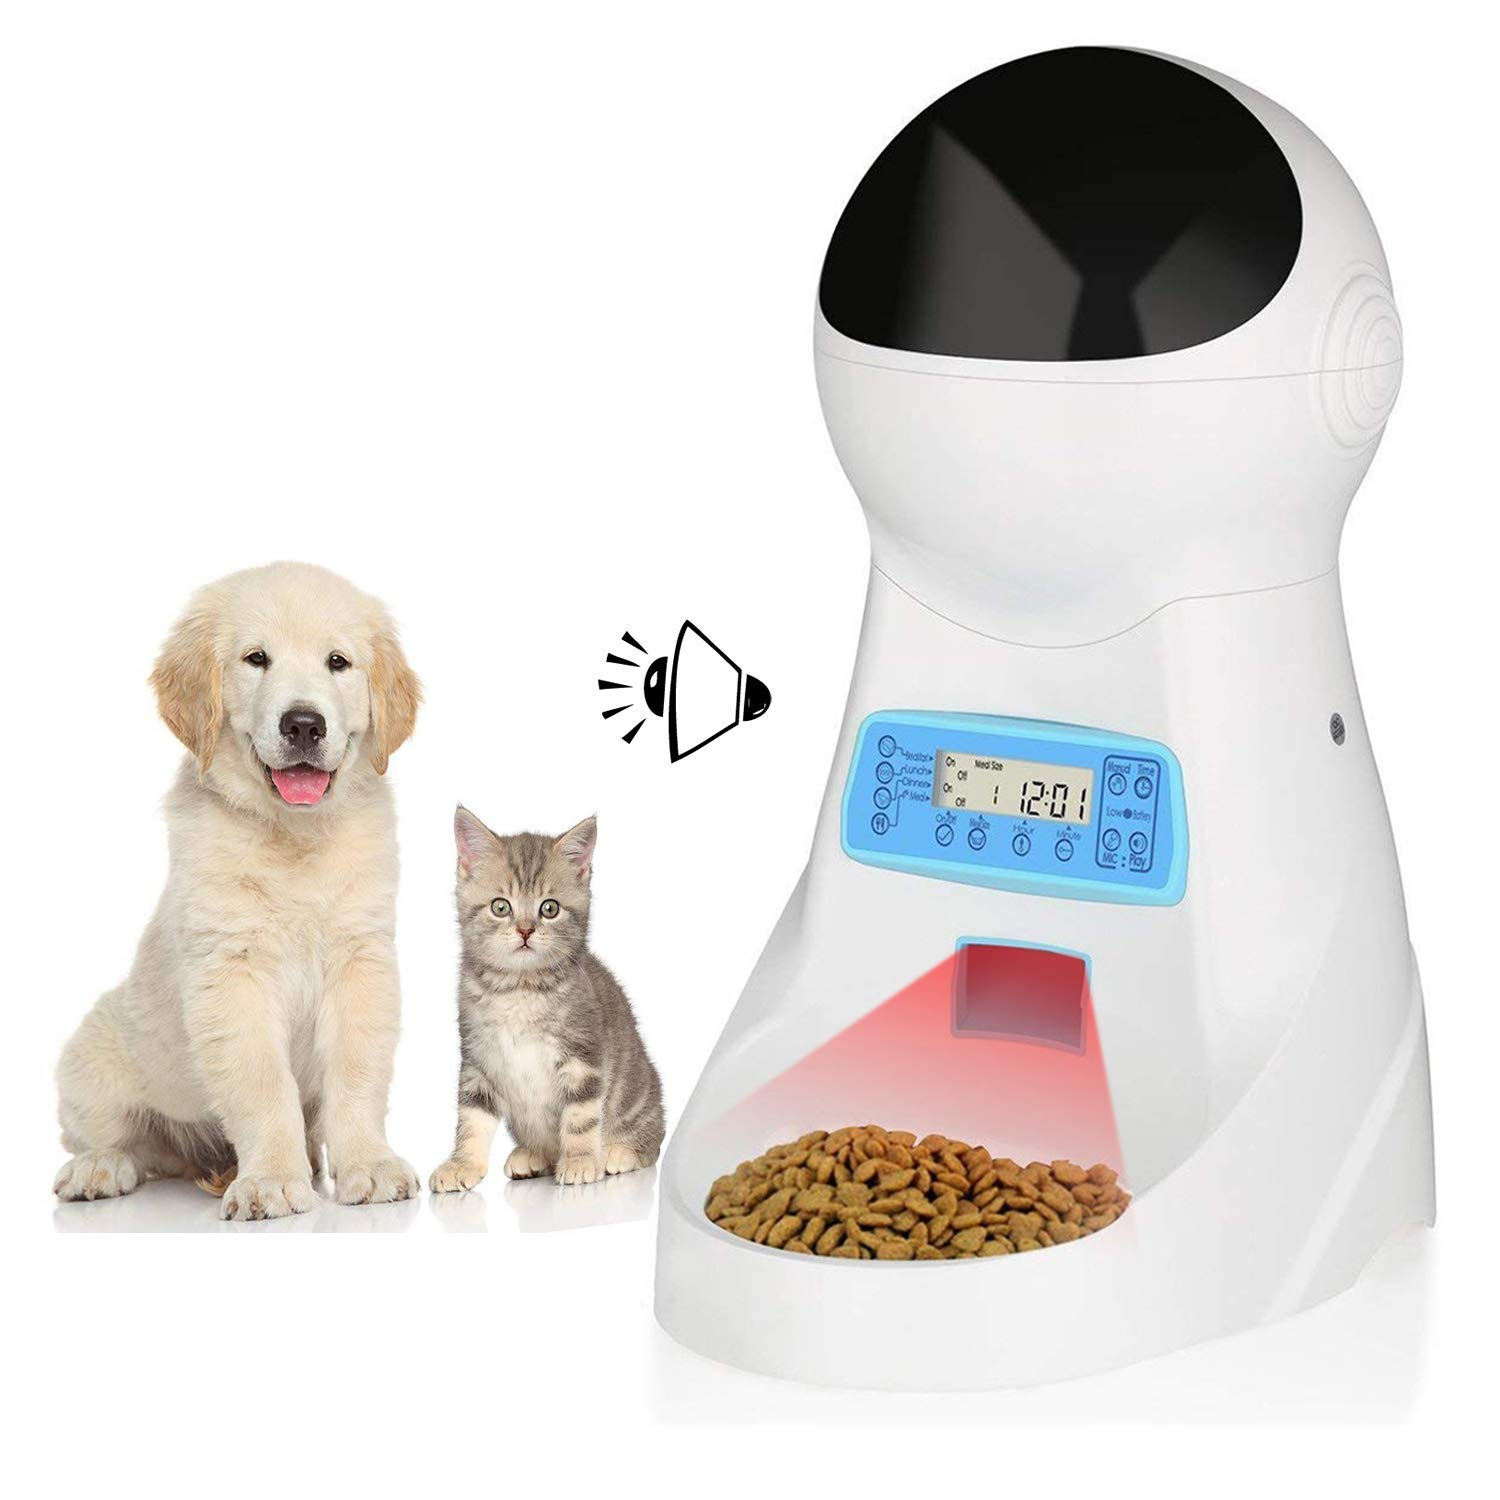 Cat Supplies Pet Supplies Cat Mate Automatic 2 Meal Timed Pet Feeder Food Dispenser Bowl Cats Dogs New Wide Varieties